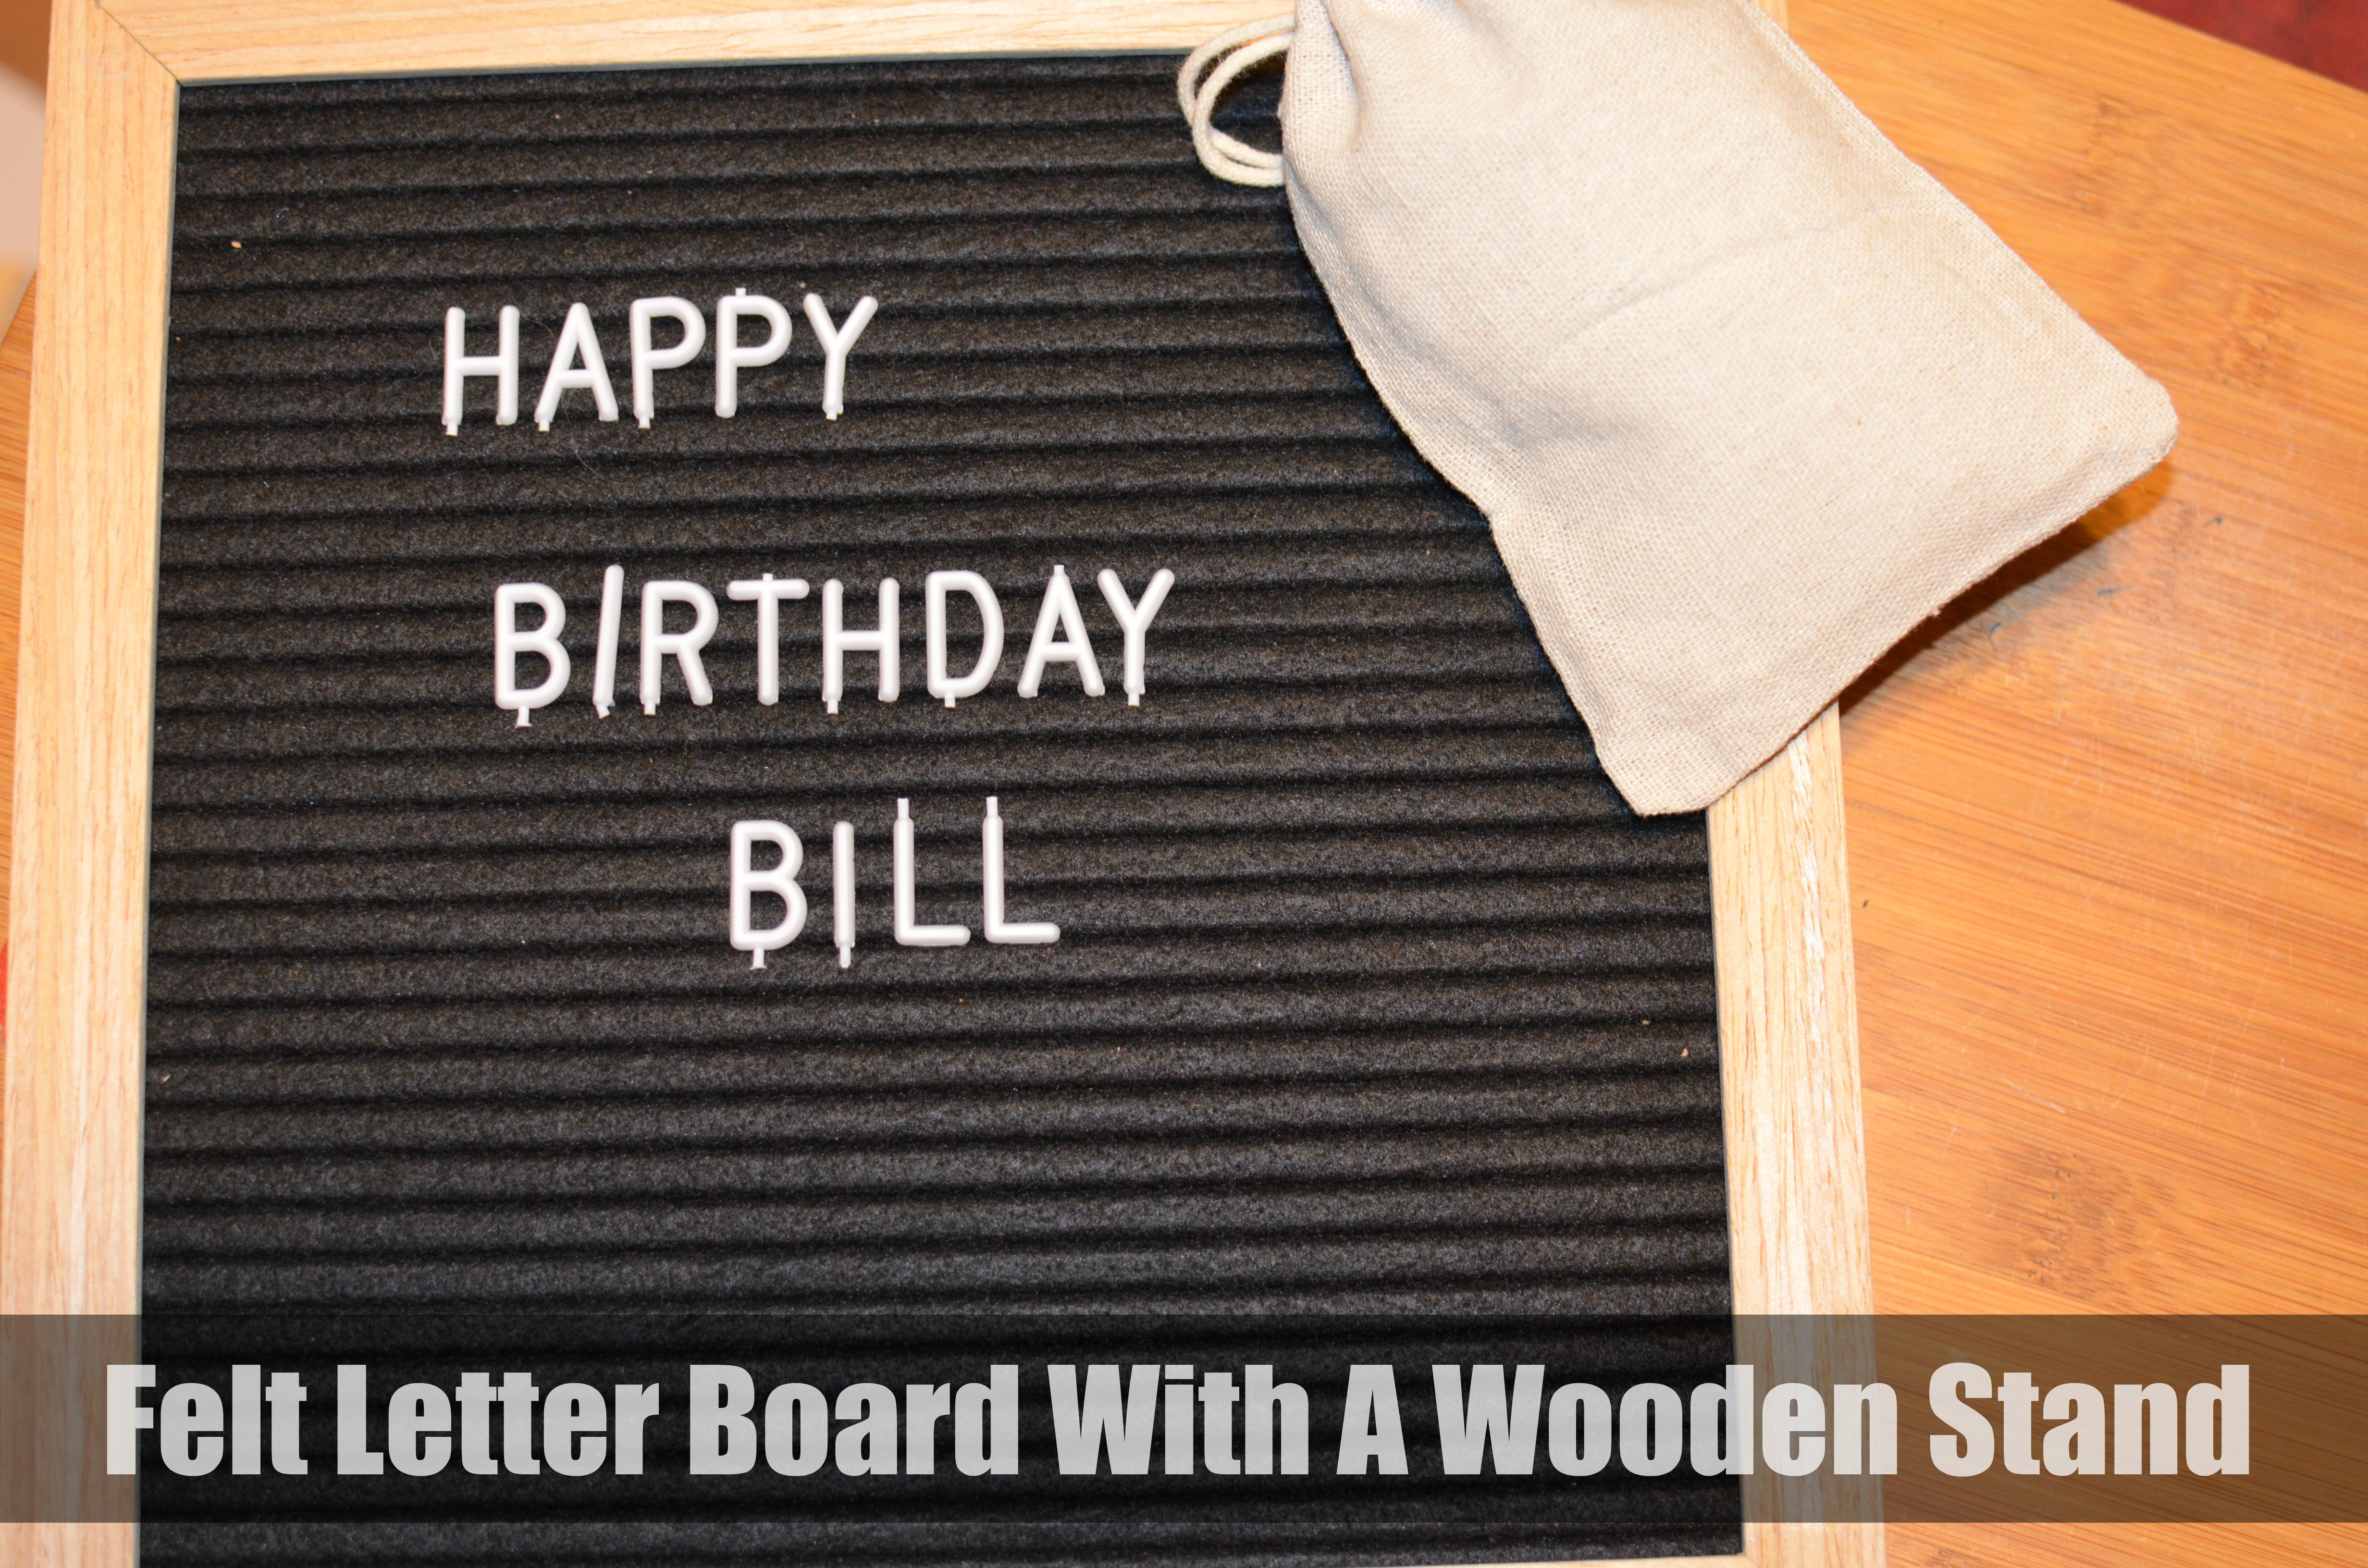 Felt Letter Board With A Wooden Stand JustFeltRight ⋆ The Stuff of